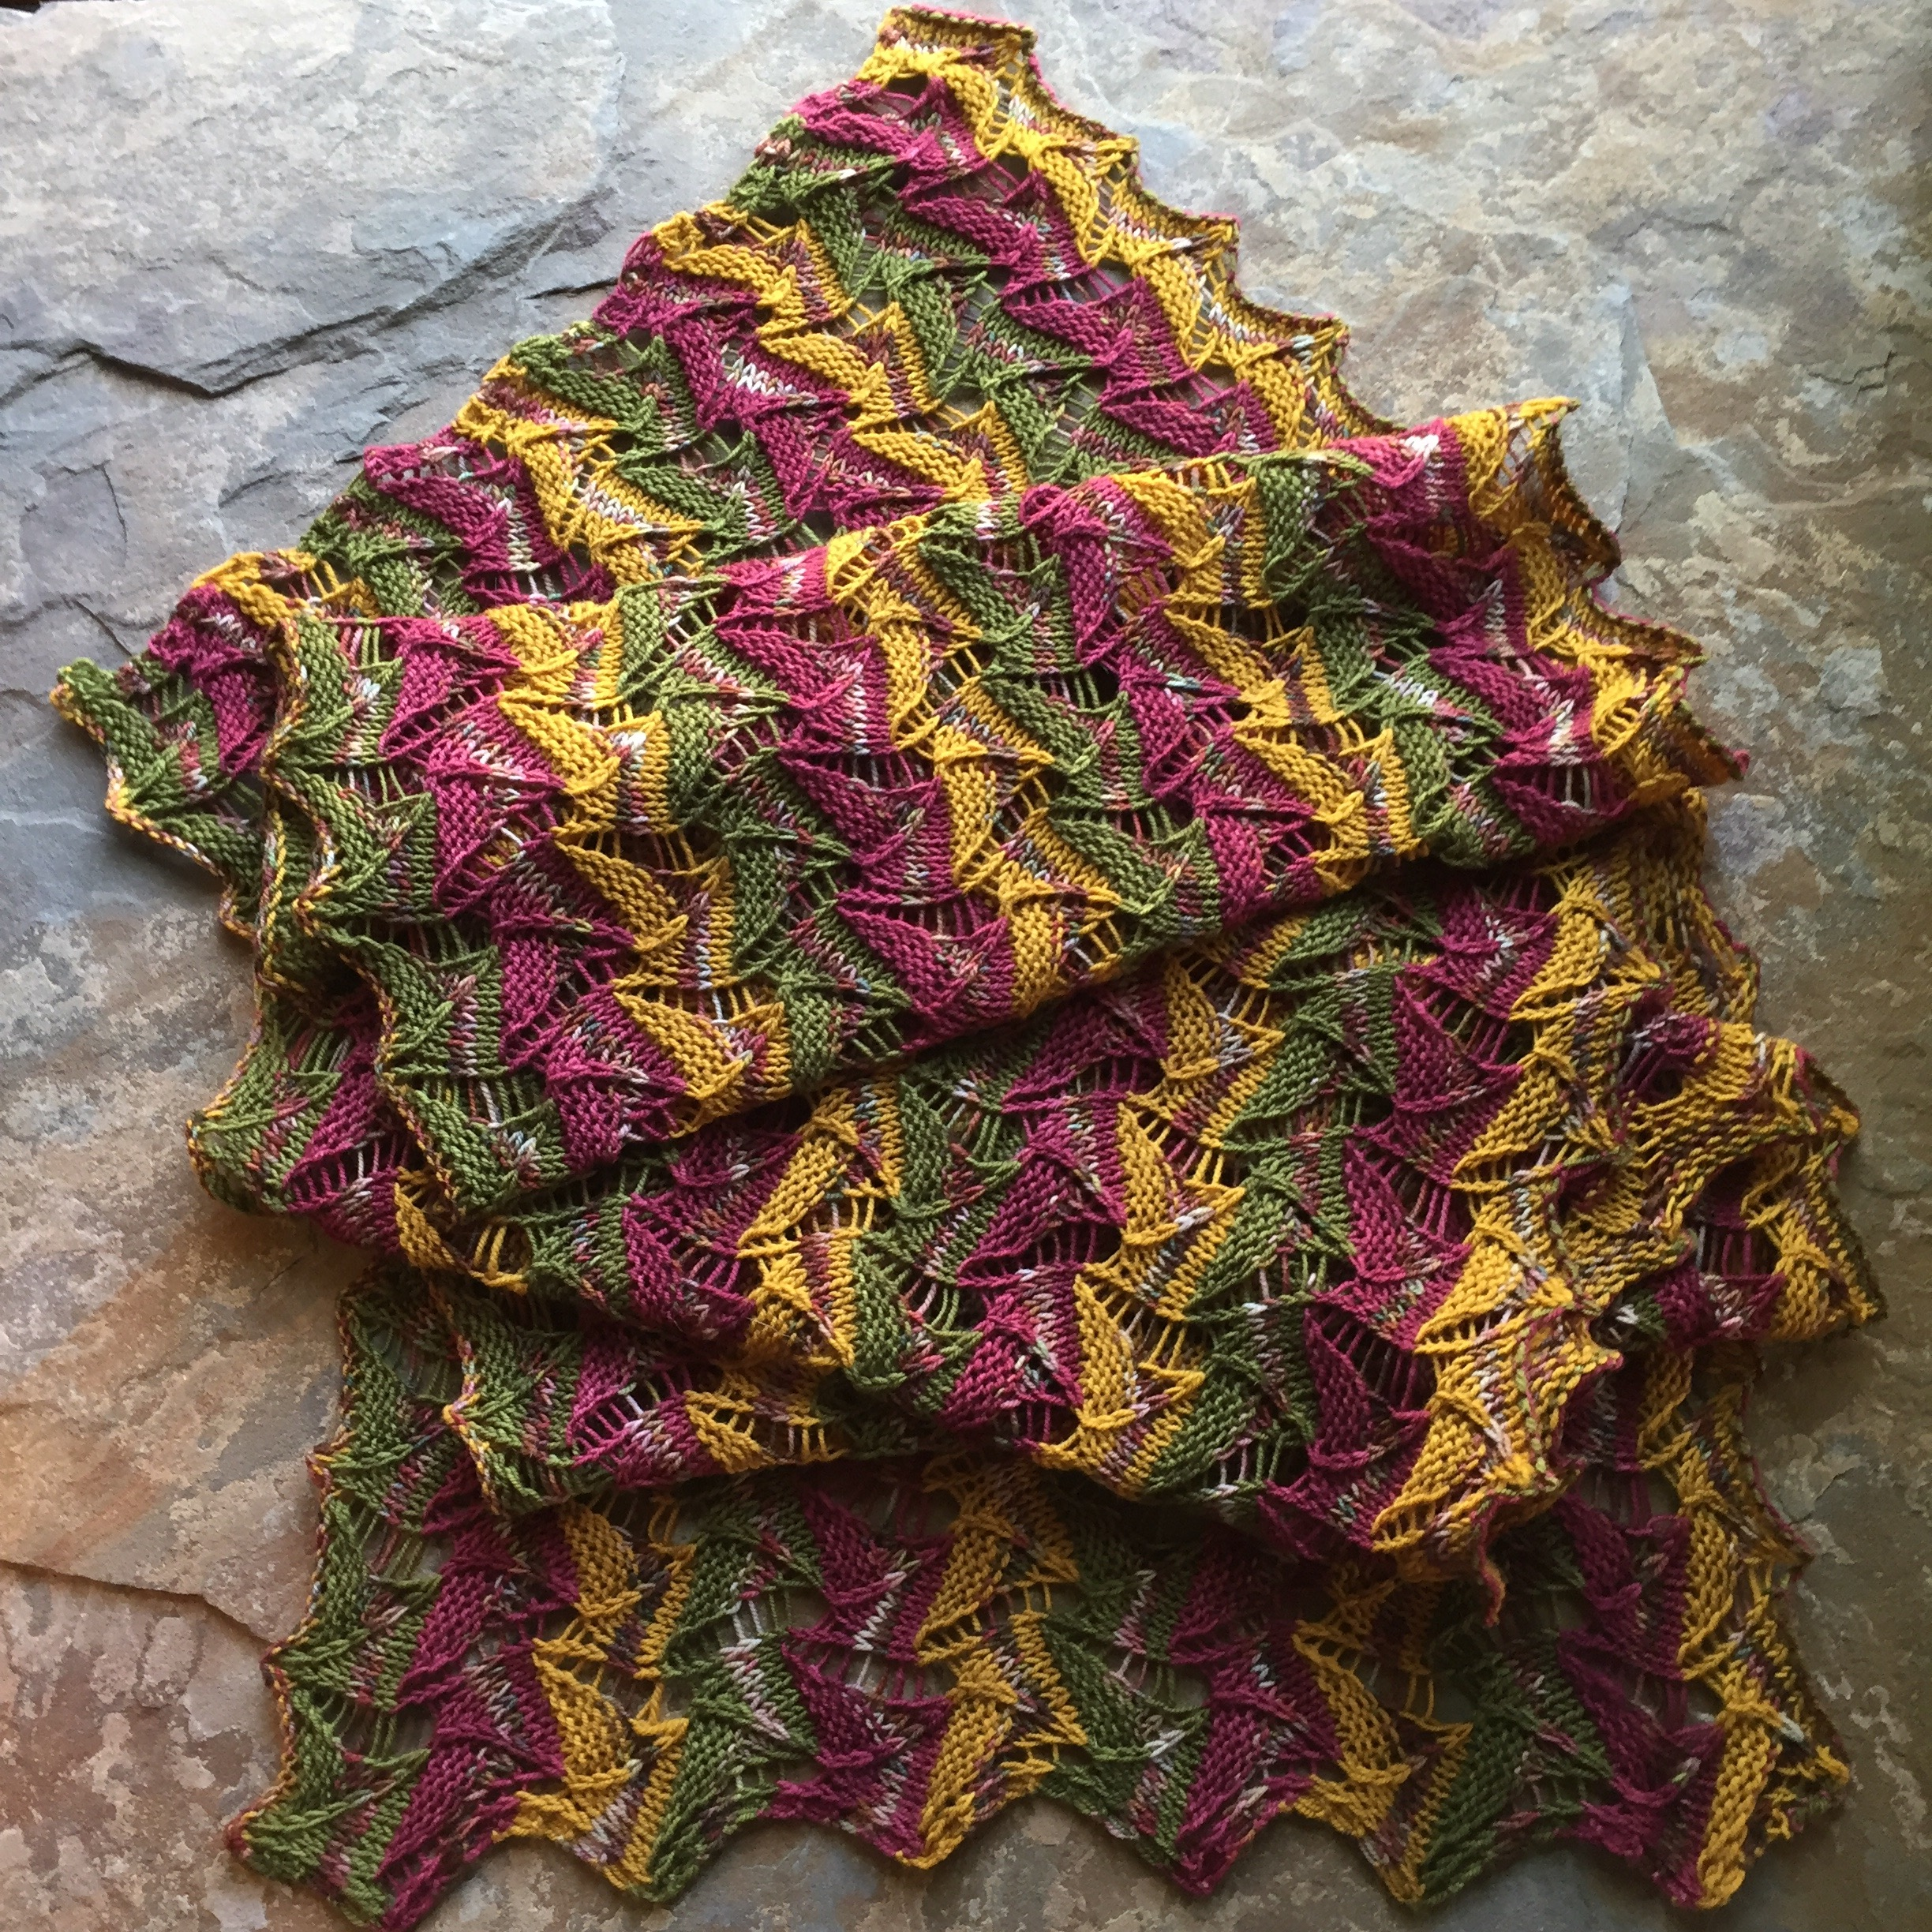 The Oriflamme Shawl knit and designed by Jennifer Kirchenbauer of LavishCraft.